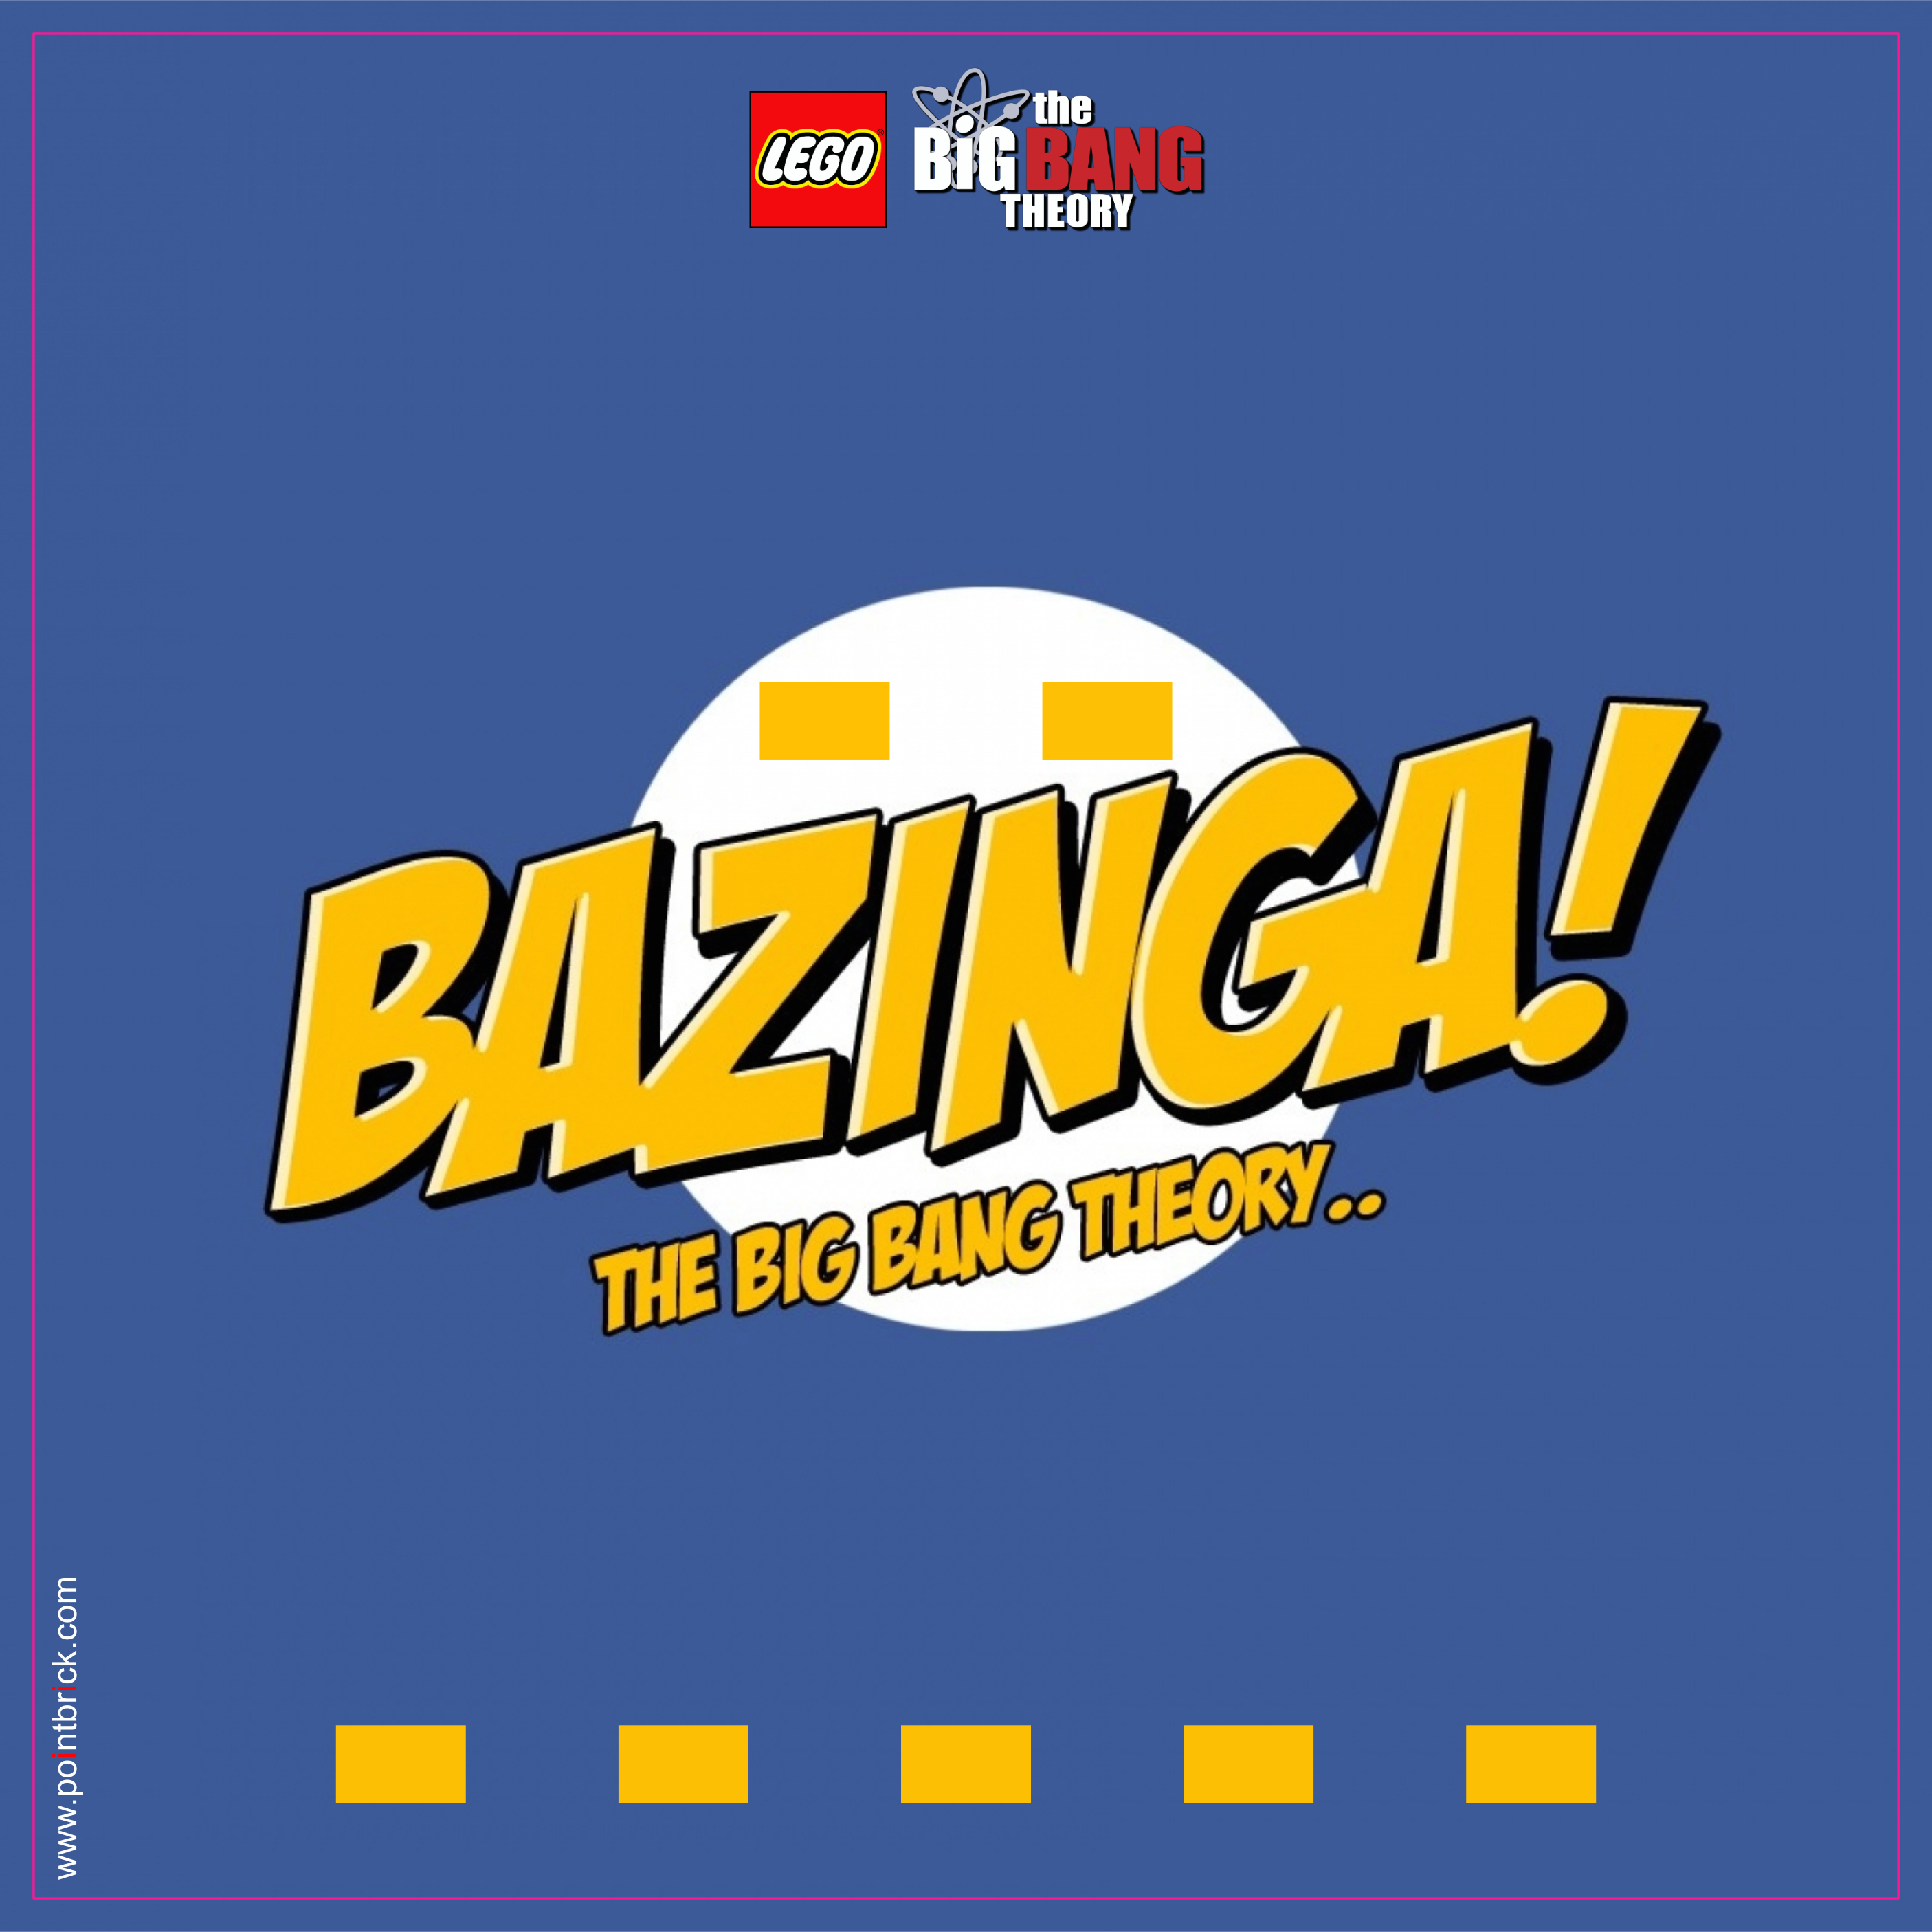 LEGO Minifigures Display Frame - Background 230mm The Big Bang Theory - Bazinga - Clicca sull'immagine per scaricarla gratuitamente!